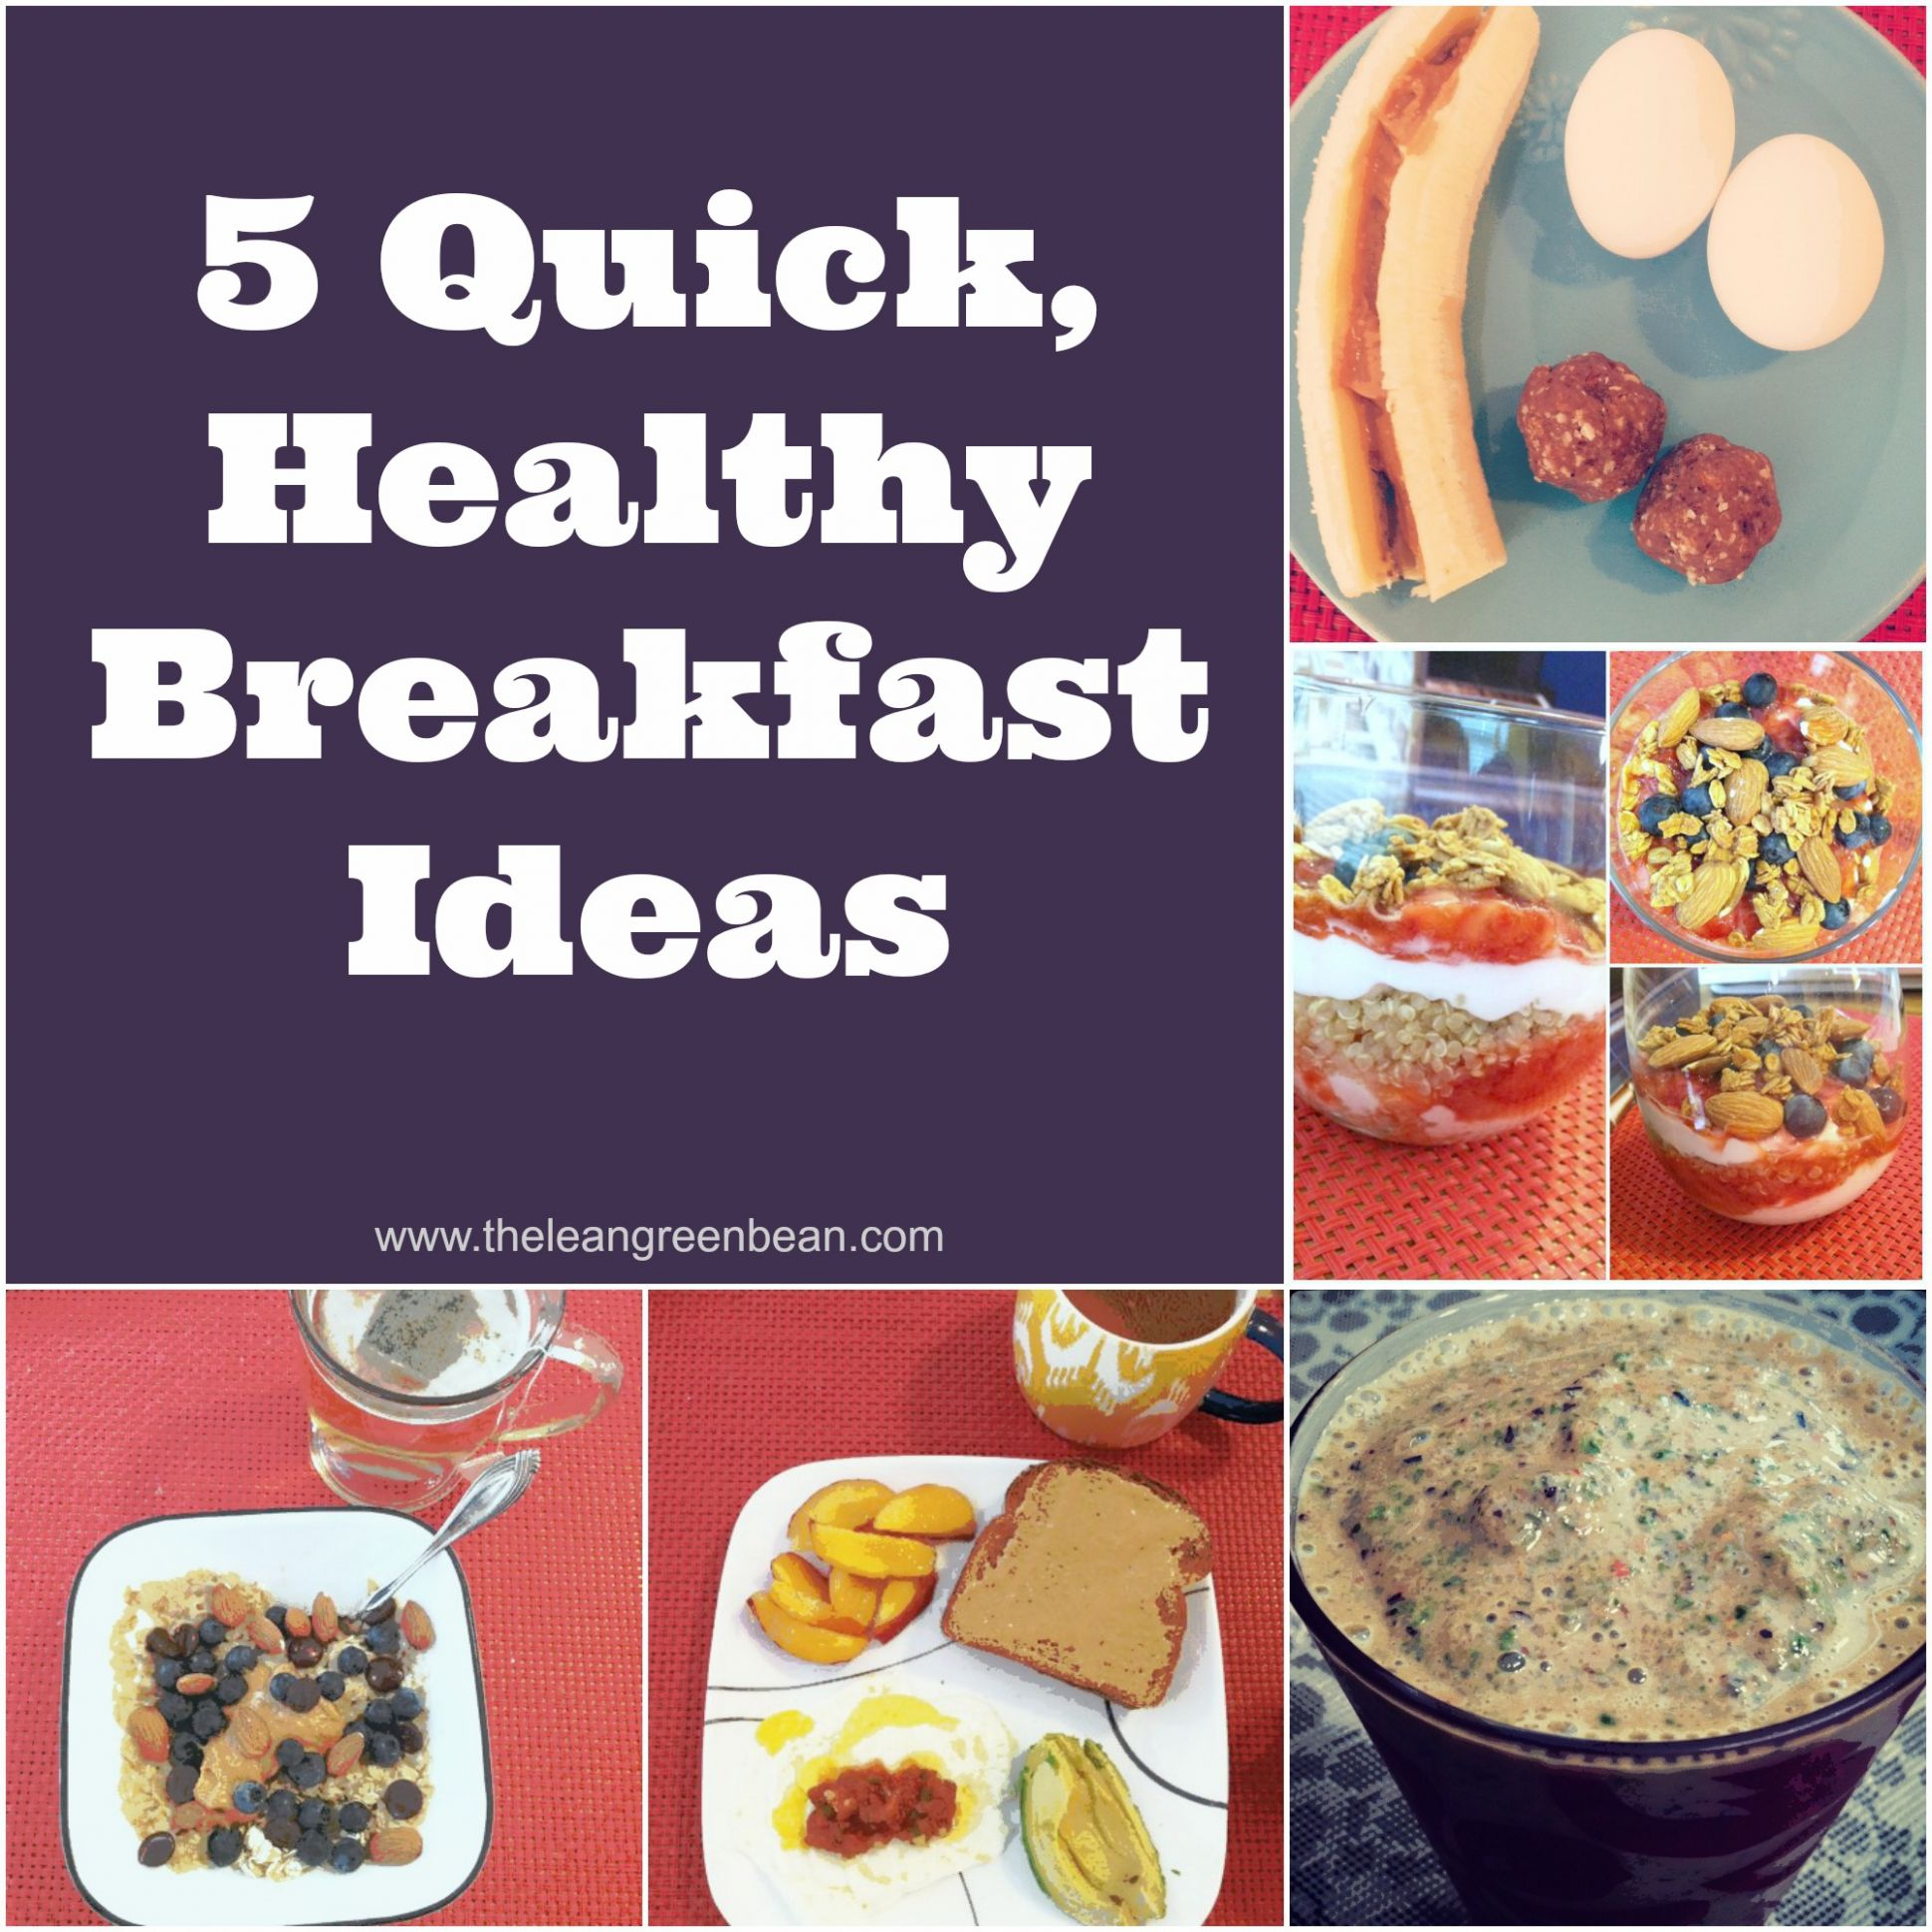 10 Quick Healthy Breakfast Ideas from a Registered Dietitian - Breakfast Recipes Quick